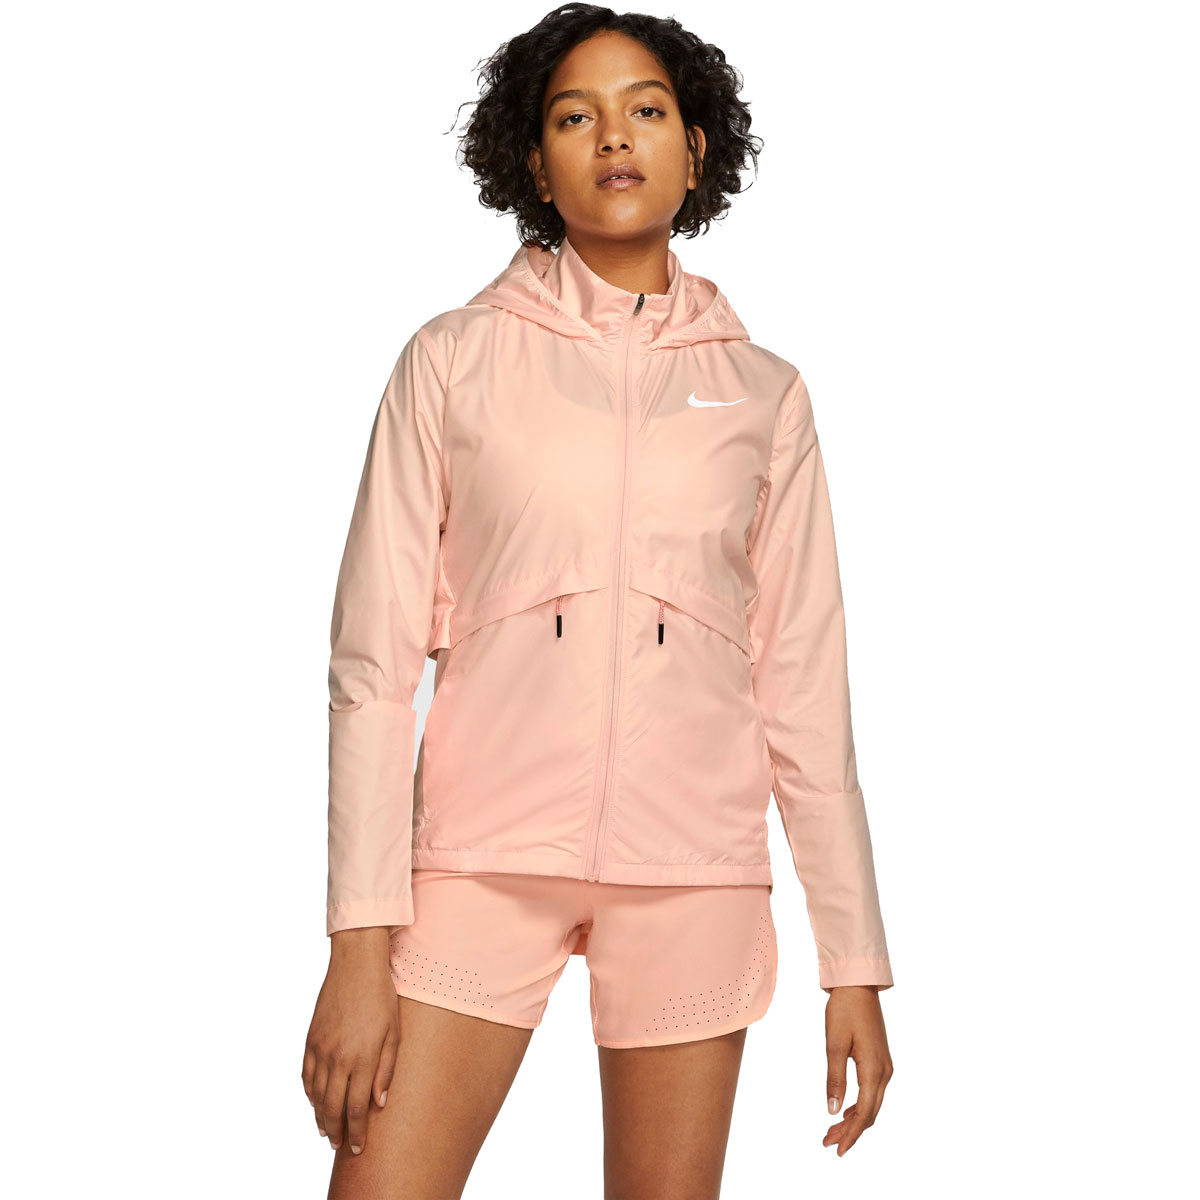 Women's Nike Essential Packable Running Rain Jacket - Color: Washed Coral/Reflective Silver - Size: M, Washed Coral/Reflective Silver, large, image 1